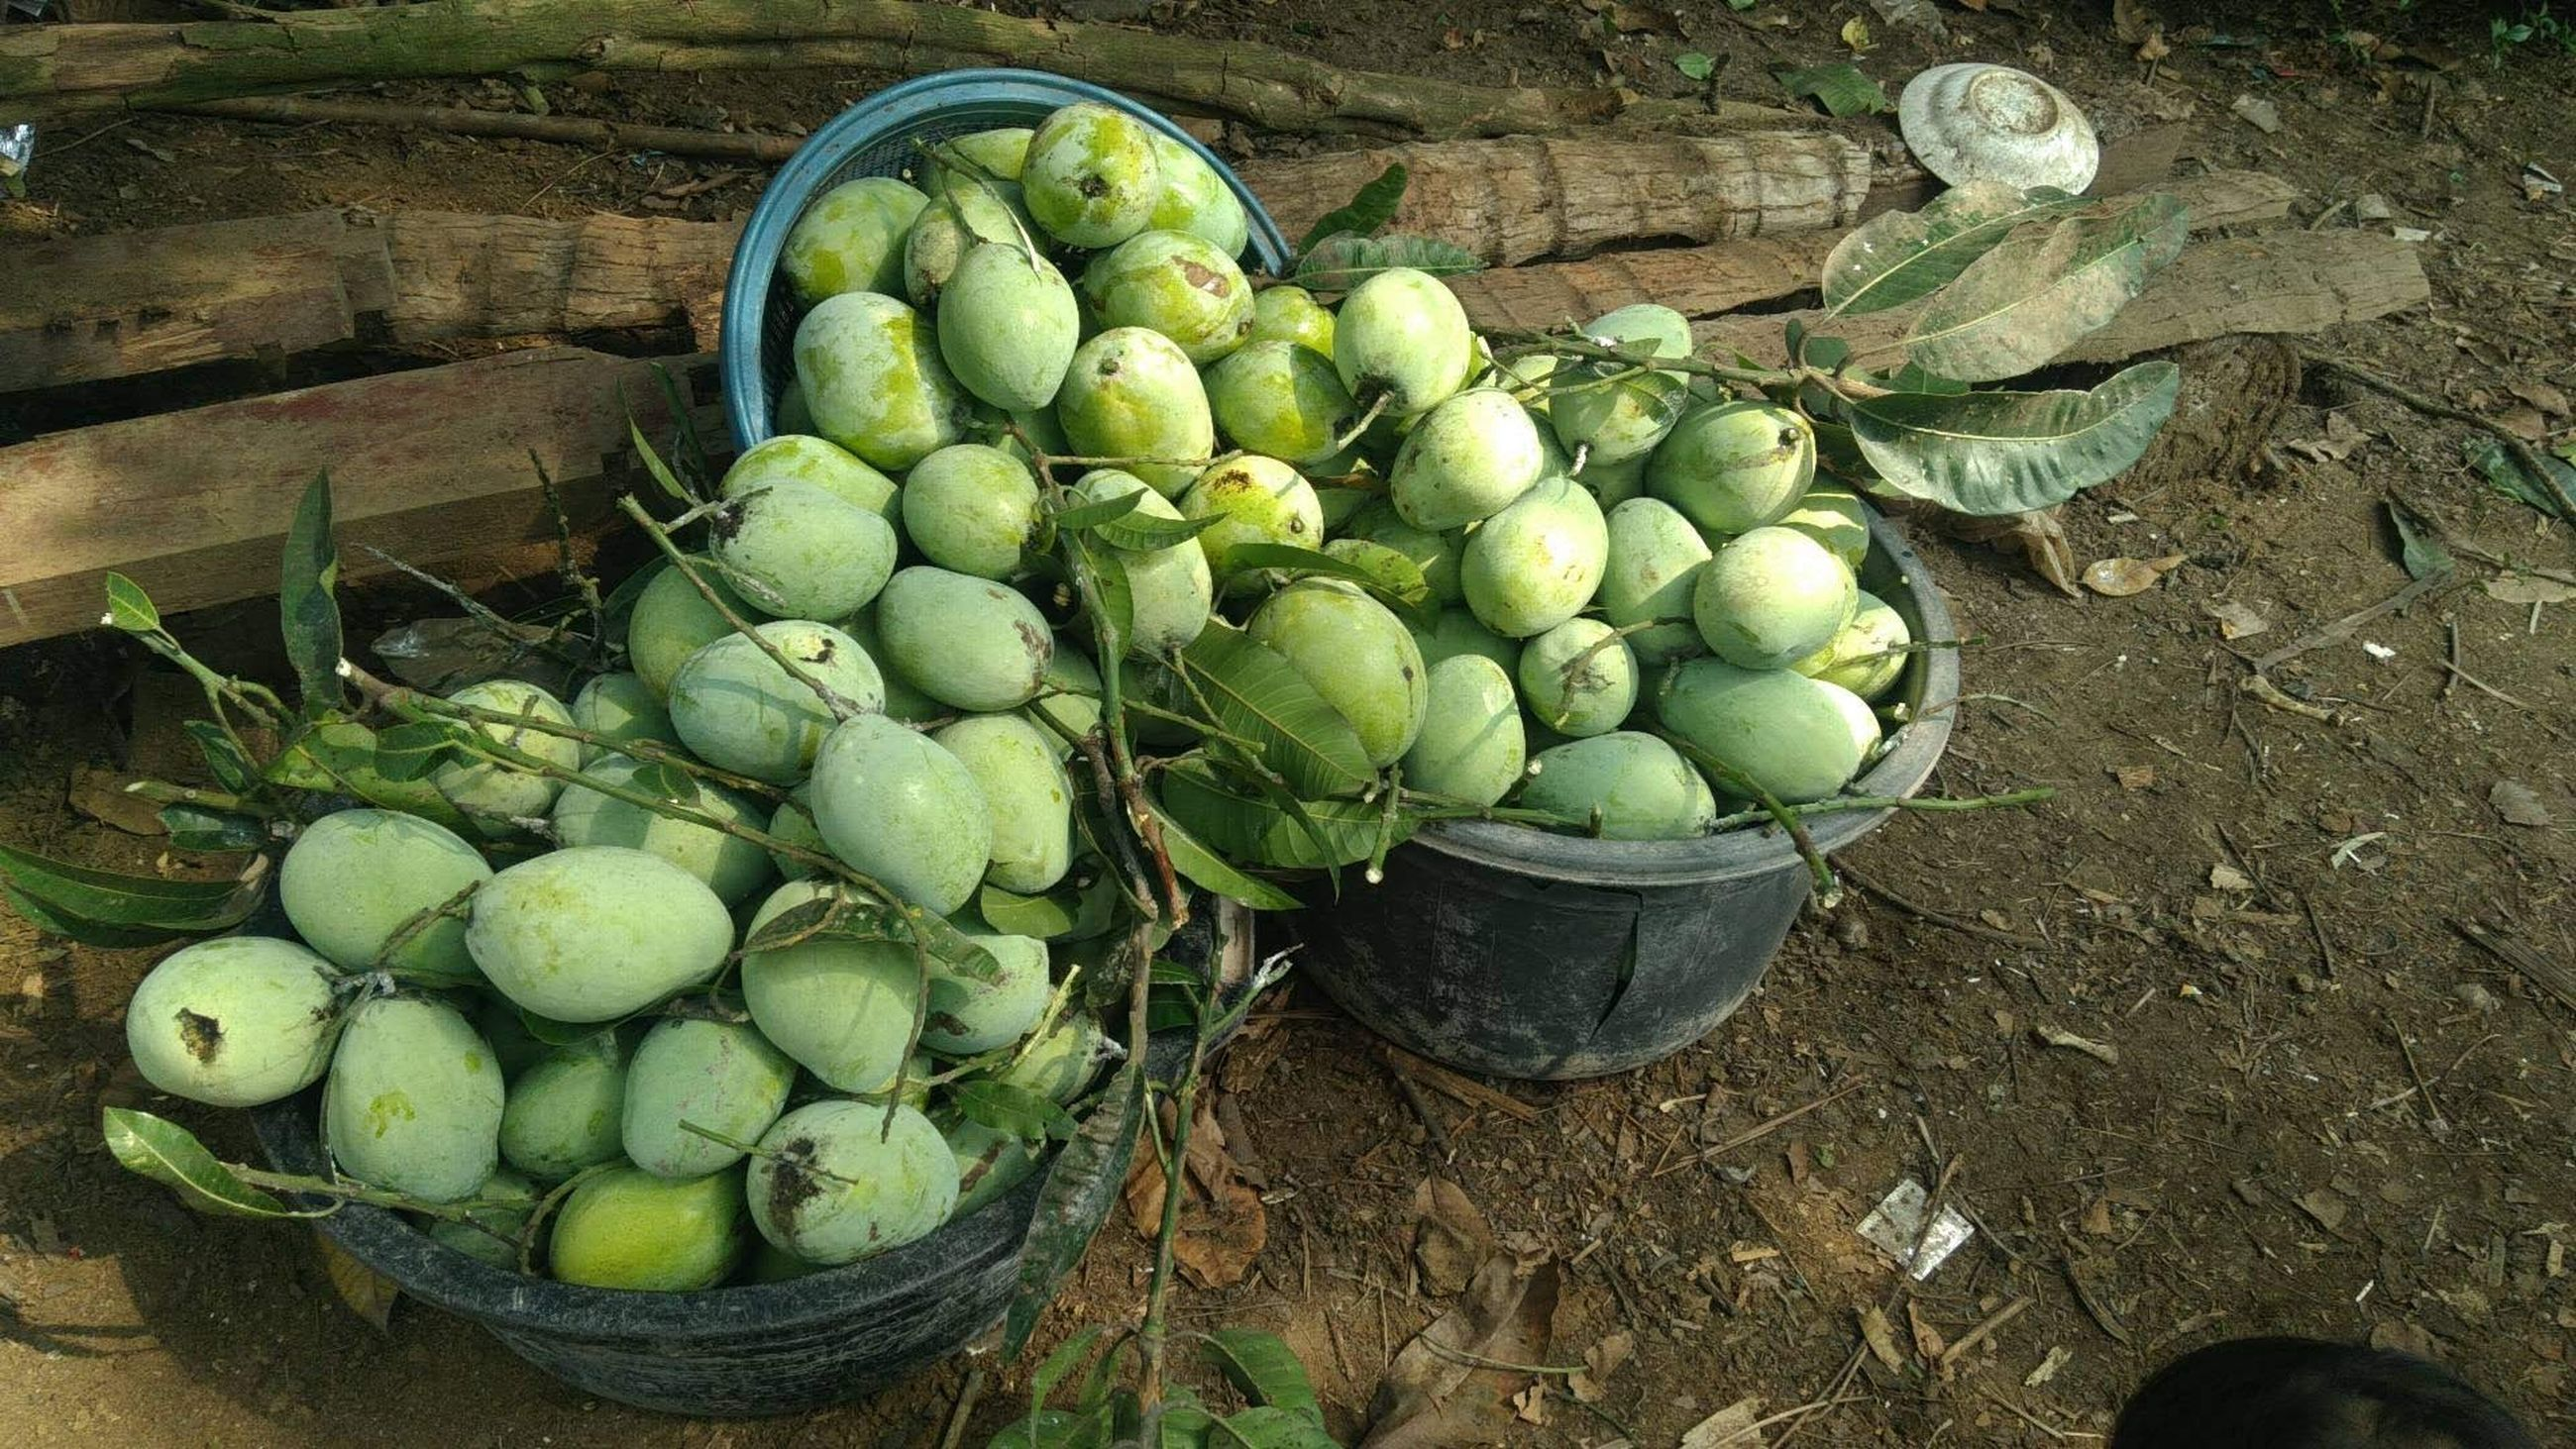 food, food and drink, healthy eating, freshness, wellbeing, fruit, green, high angle view, container, plant, basket, produce, day, no people, abundance, large group of objects, nature, gourd, vegetable, outdoors, for sale, land, agriculture, organic